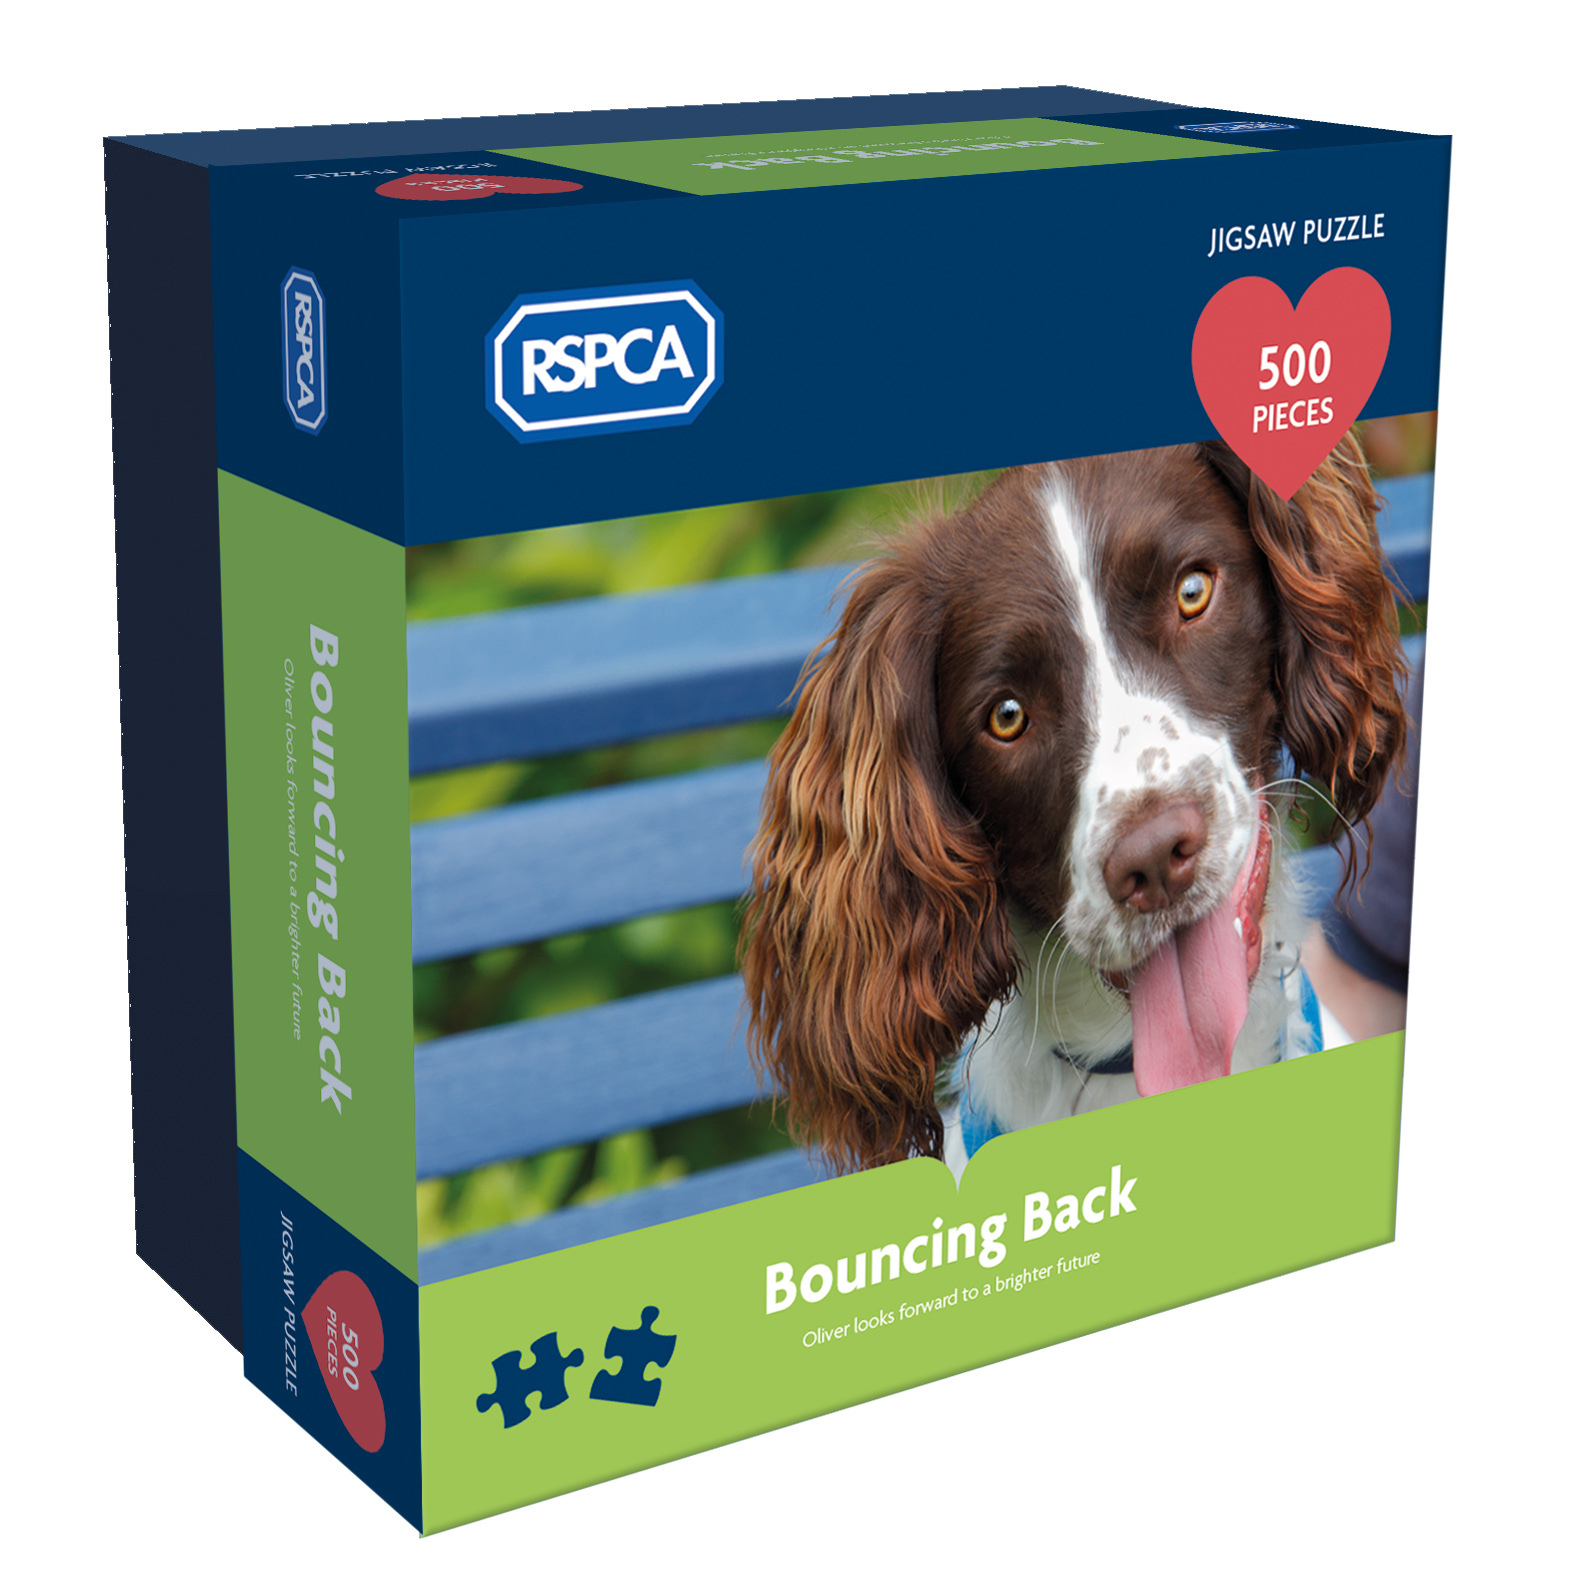 RSPCA - Bouncing Back - 500pc jigsaw puzzle